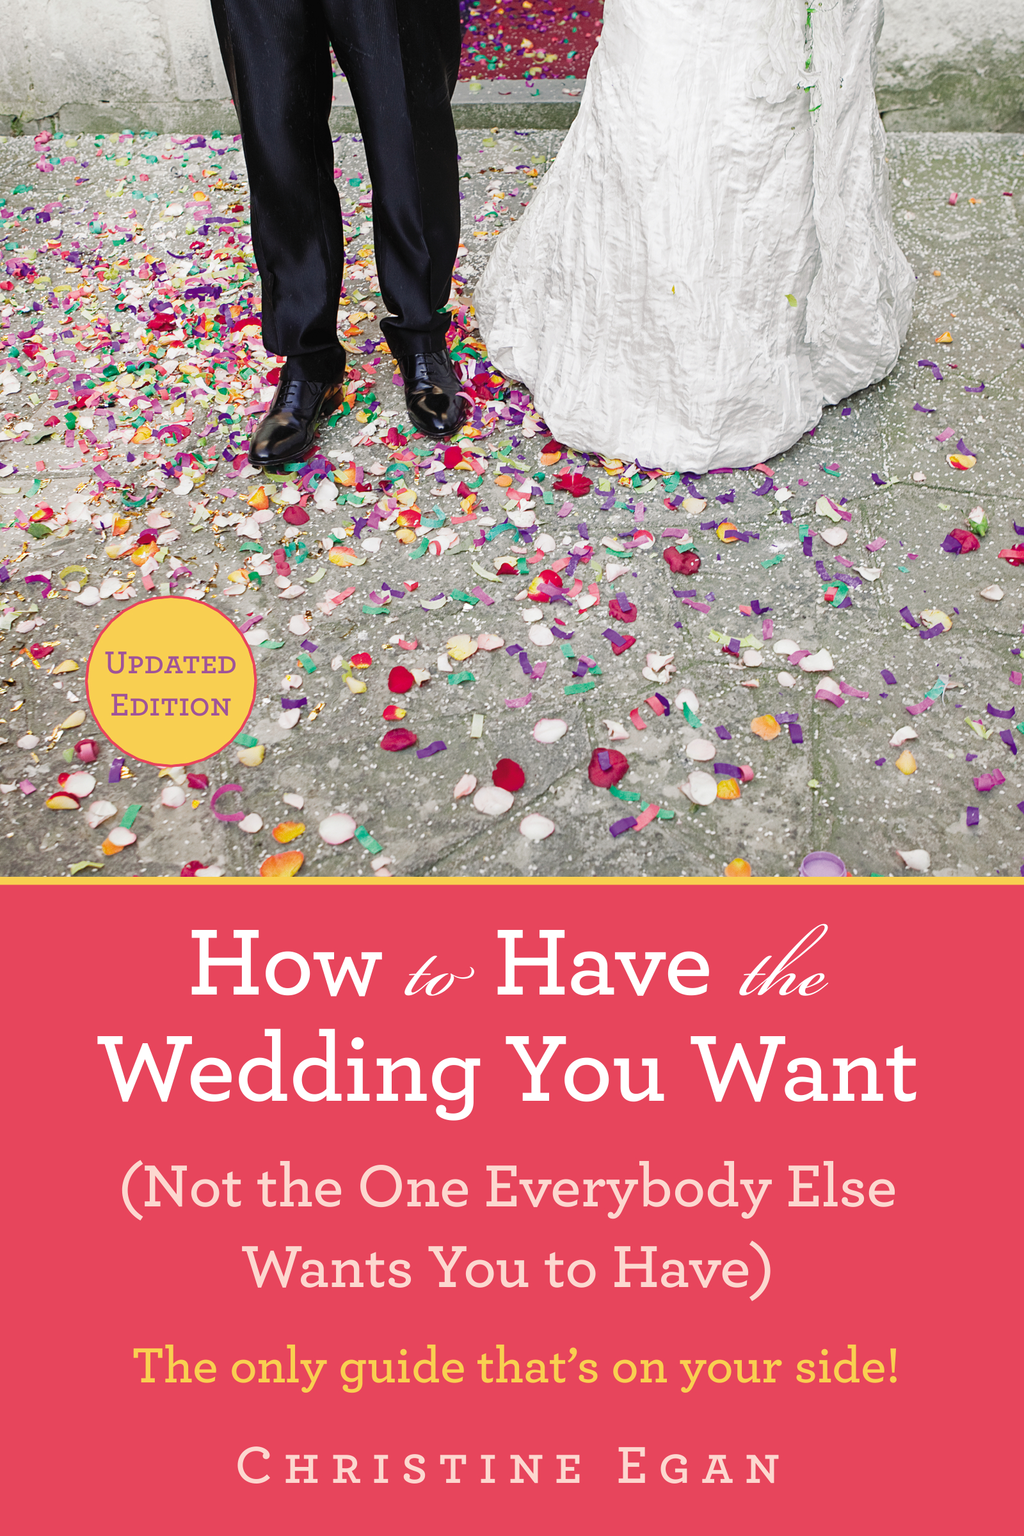 How to Have the Wedding You Want (Updated) (Not the One Everybody Else Wants You to Have)